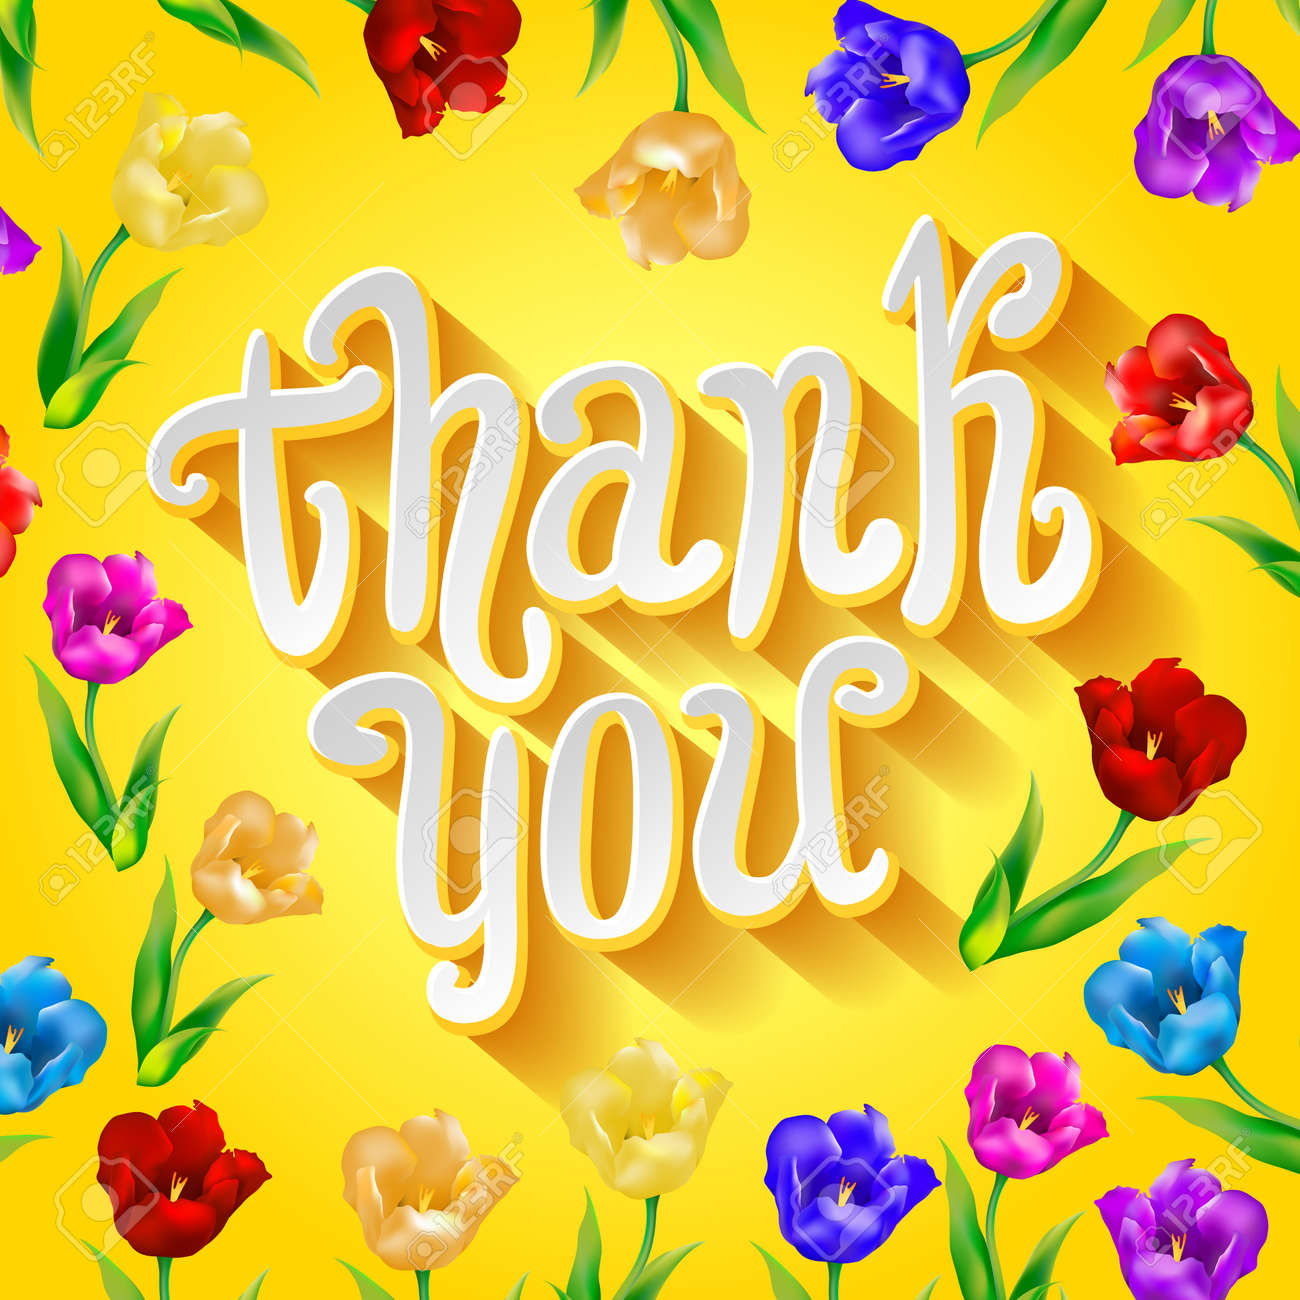 Greeting card template in yellow and white great for thank you greeting card template in yellow and white great for thank you or thanksgiving cards kristyandbryce Images